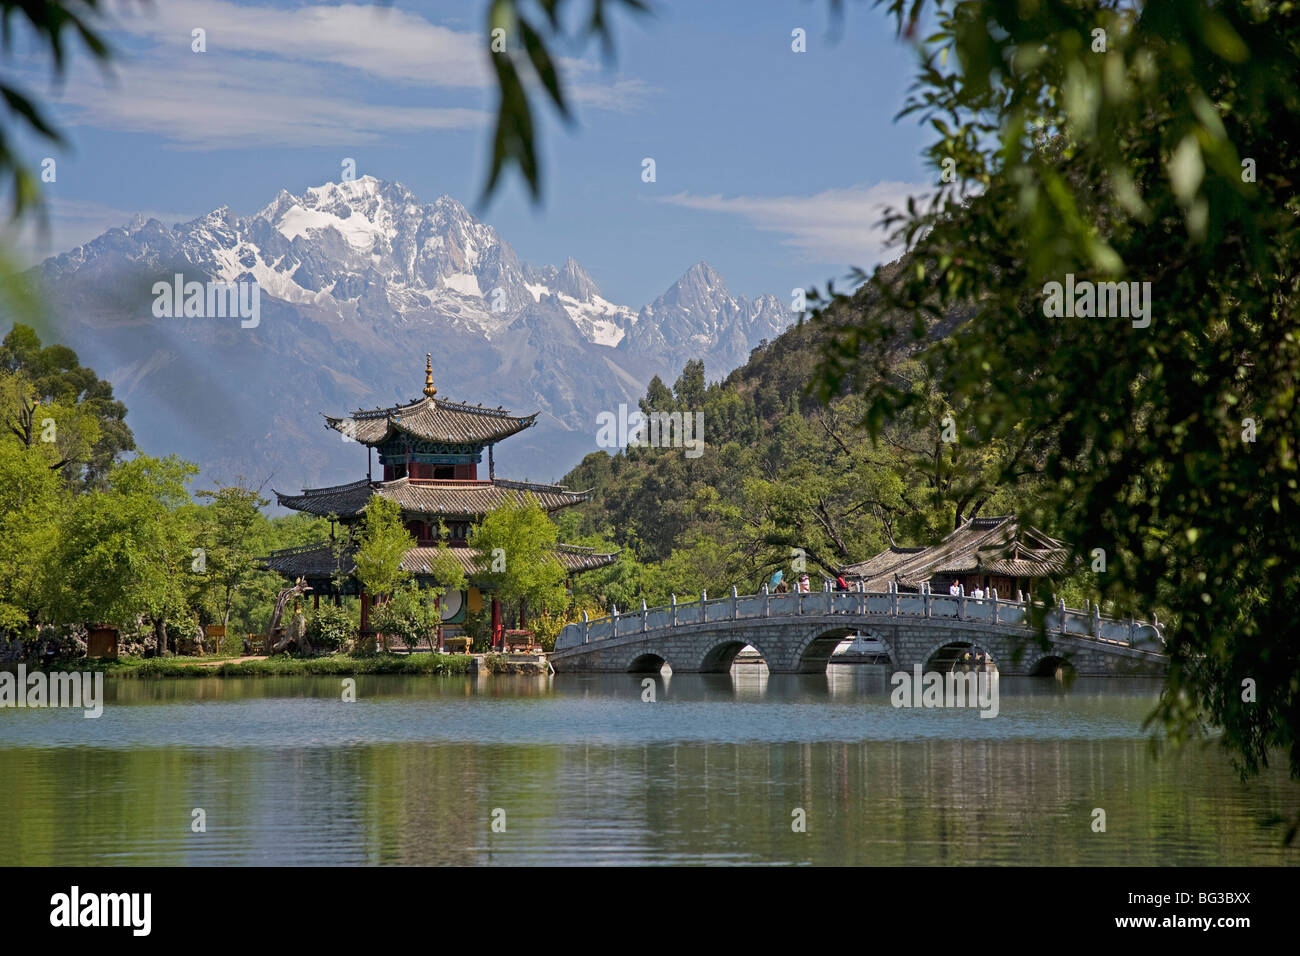 Black Dragon Pool Park, temple and bridge, with Jade Dragon Snow Mountain in background, Lijiang, Yunnan Province, - Stock Image